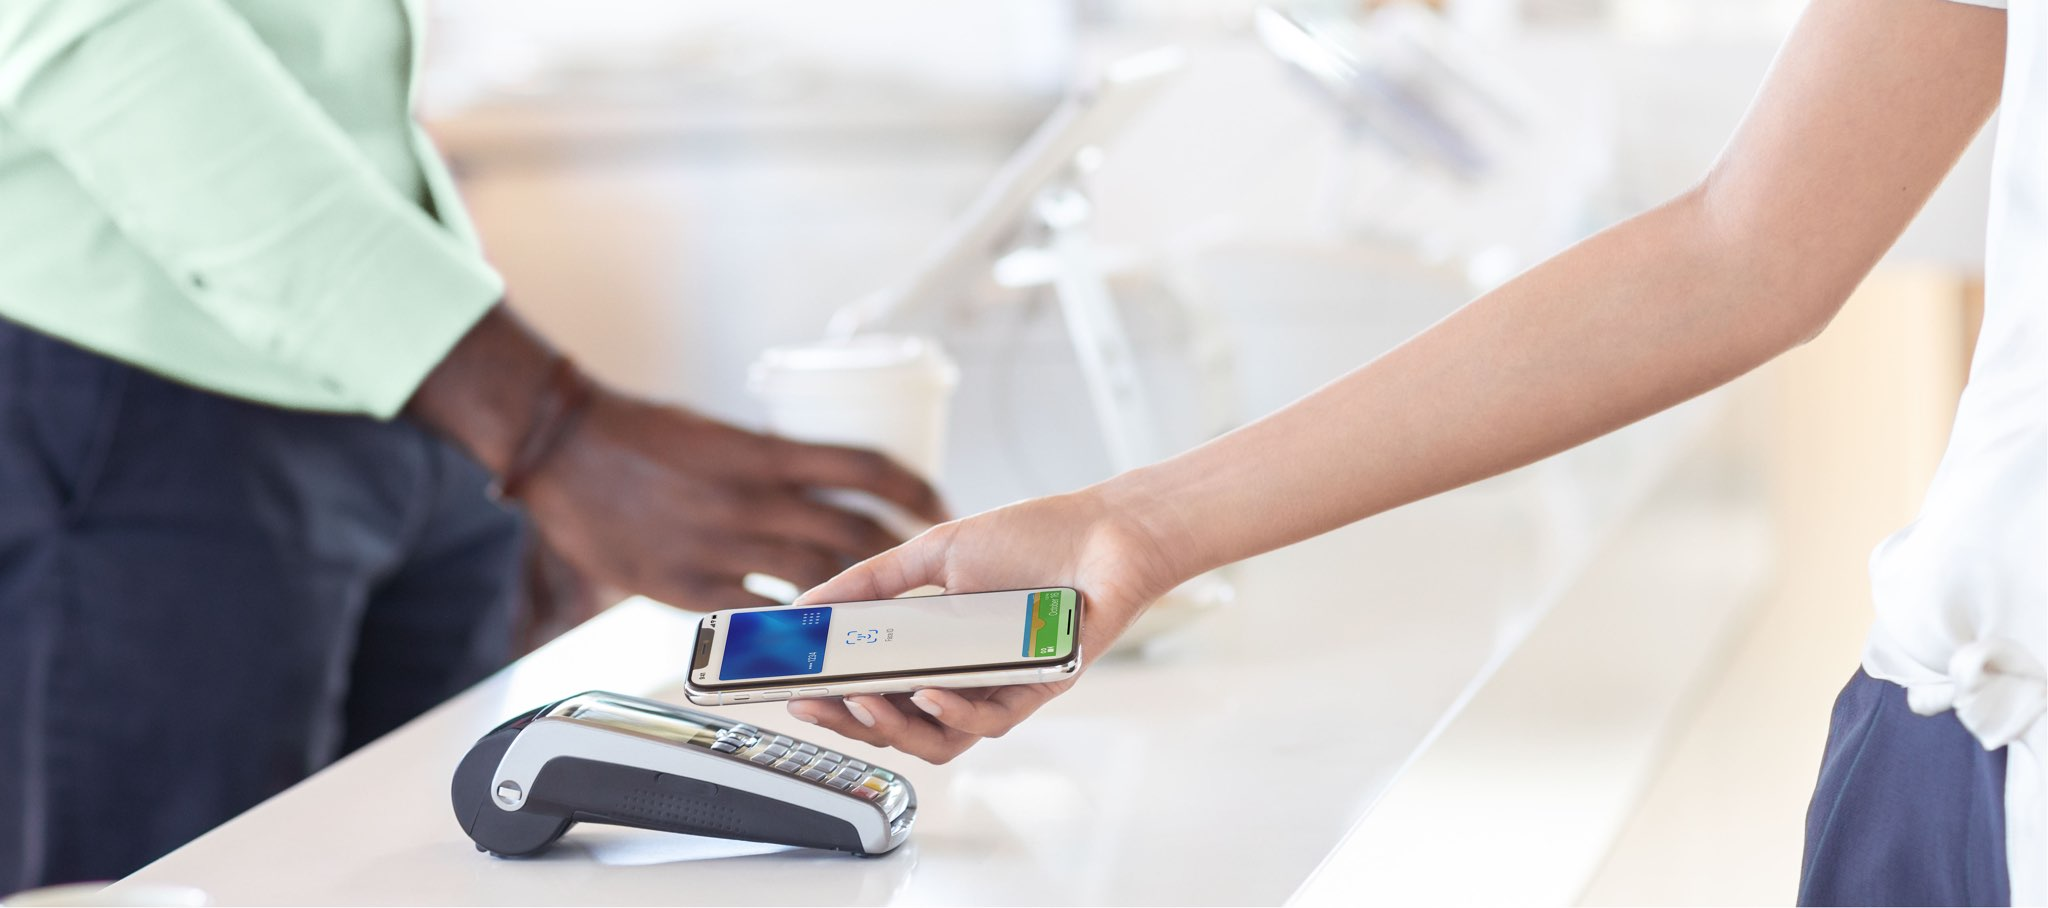 The mobile payments service Apple Pay is coming to Saudi Arabia soon